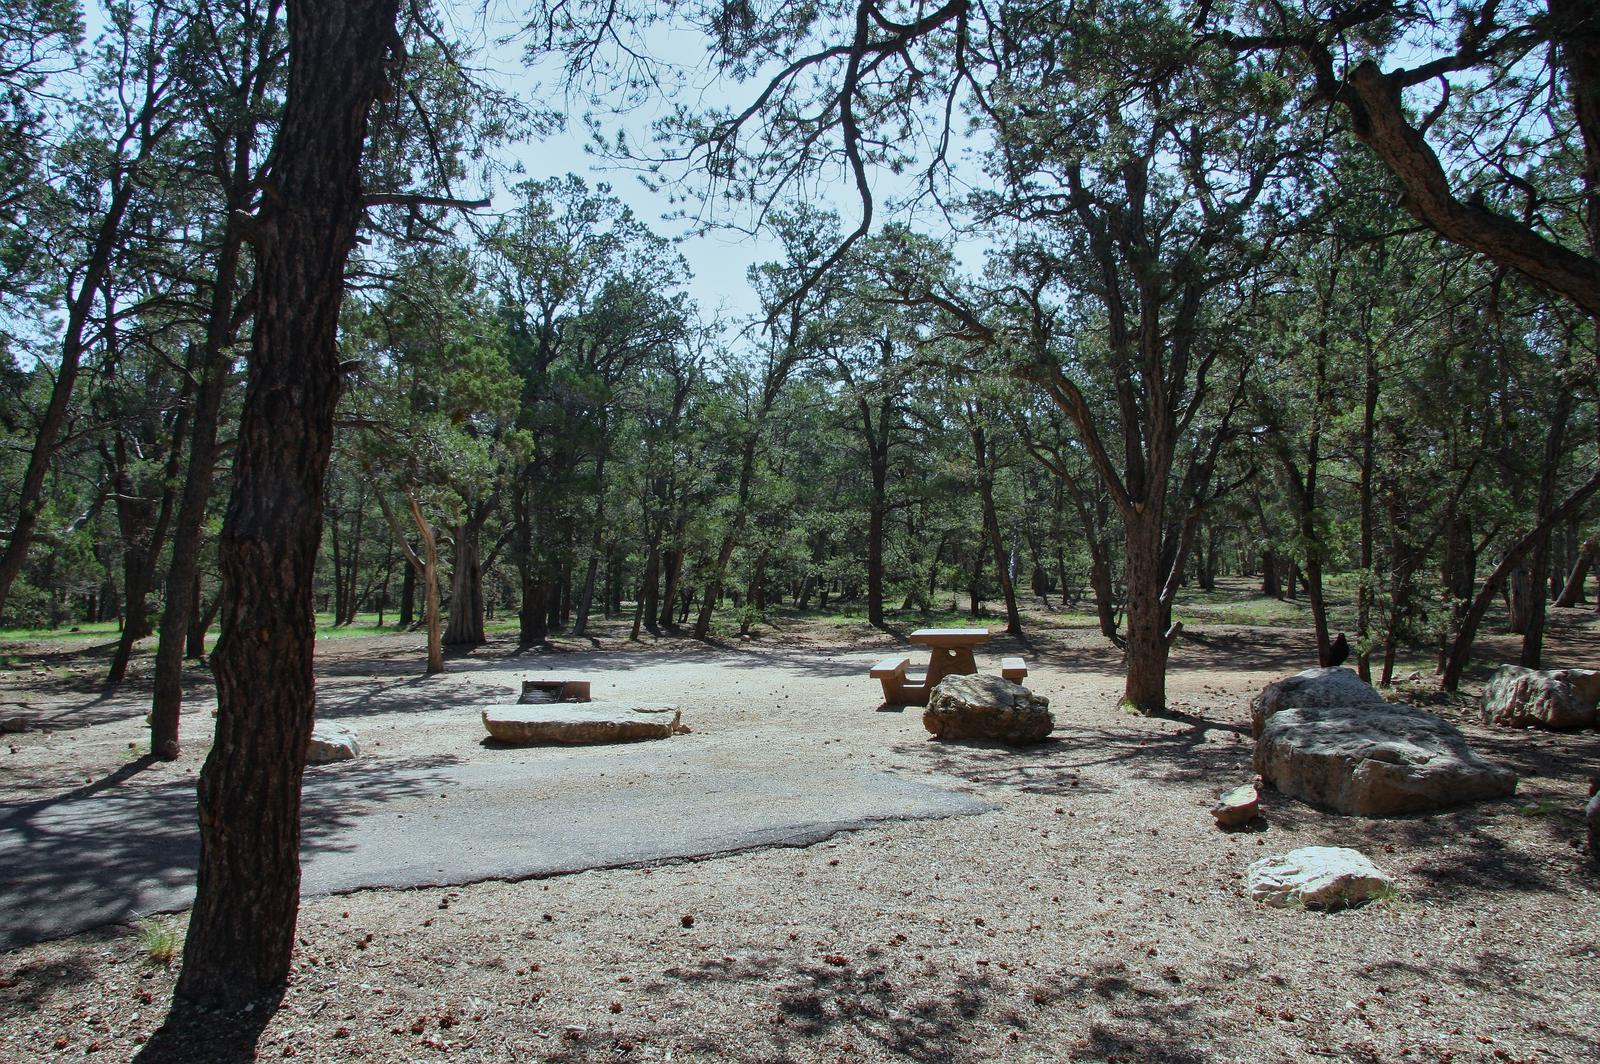 Picnic table, fire pit, and park spot, Mather CampgroundPicnic table, fire pit, and park spot for Oak Loop 234, Mather Campground